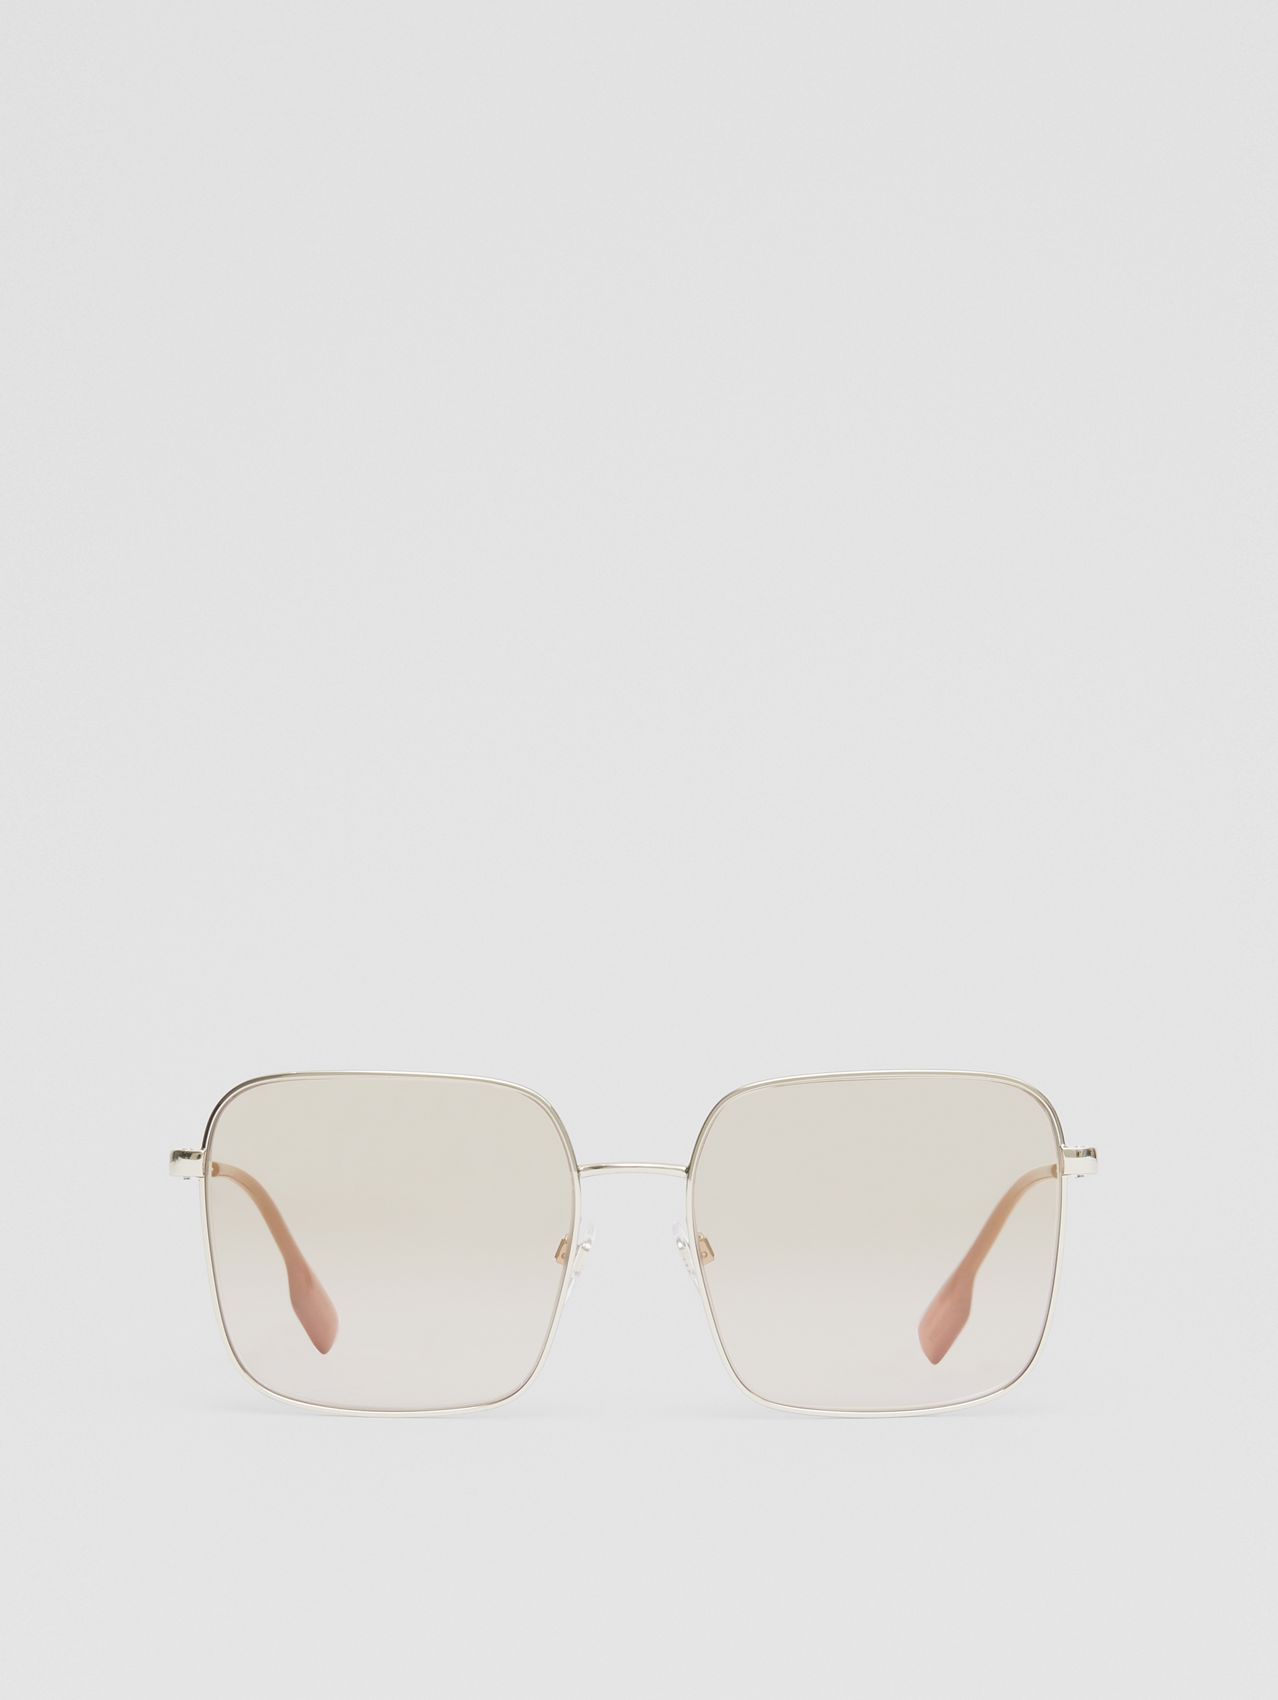 Oversized Square Frame Sunglasses in Nude Pink